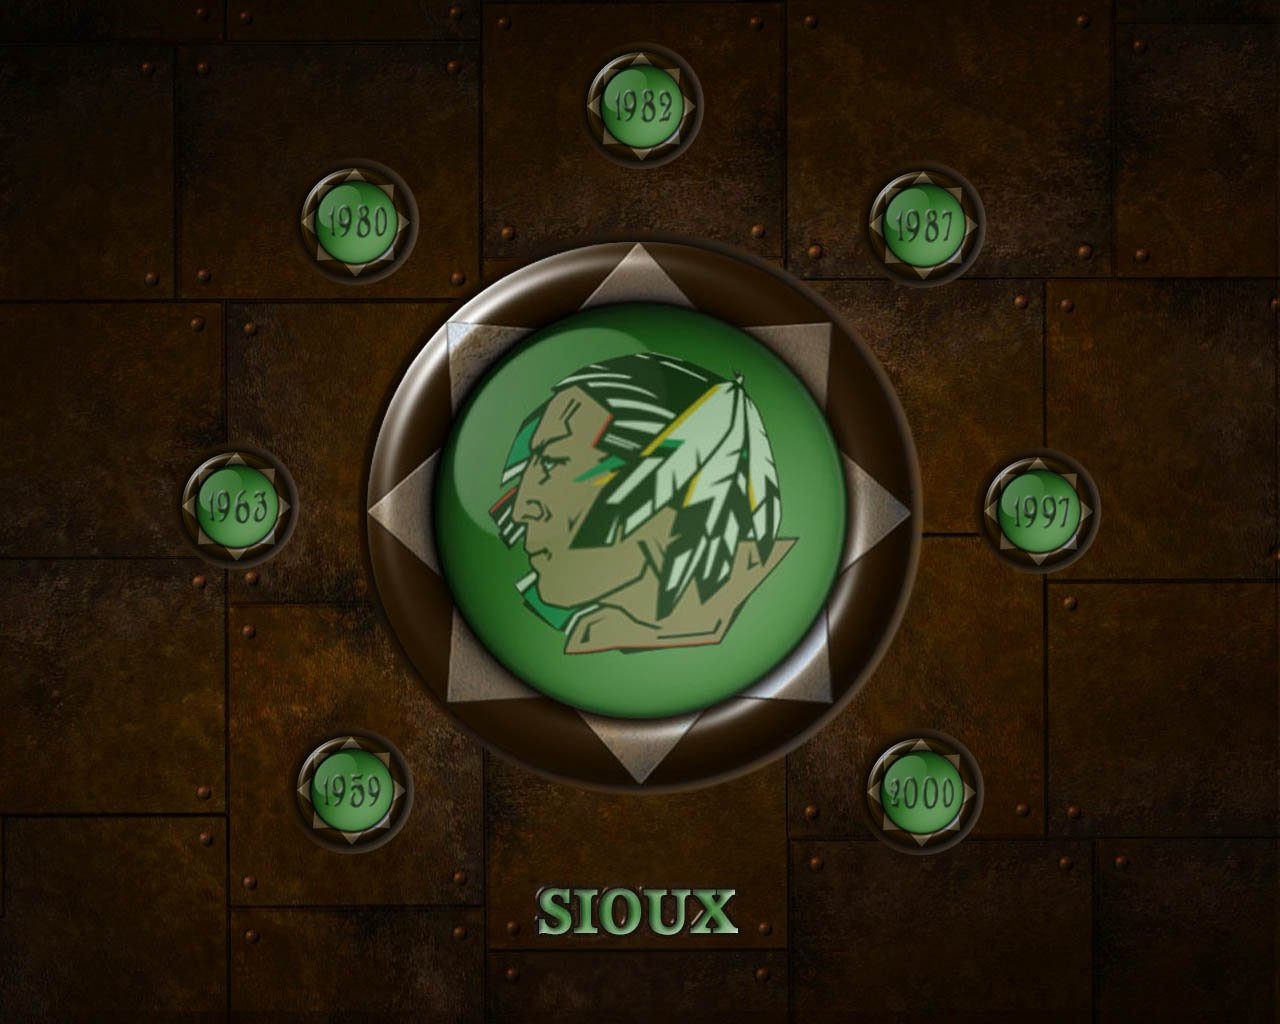 Fighting Sioux Wallpaper 1280x1024